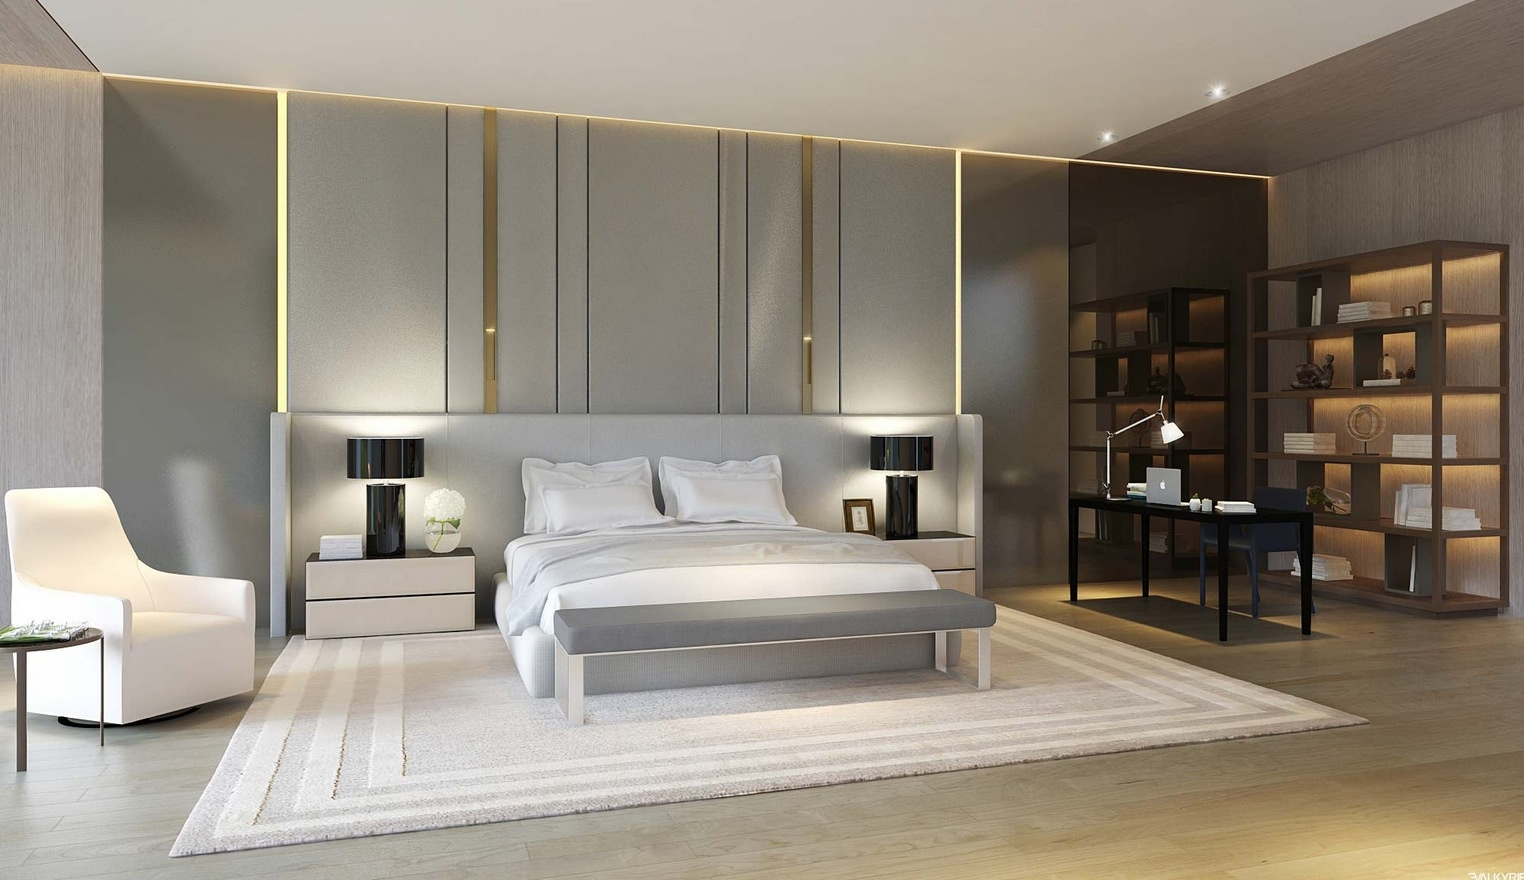 21 Cool Bedrooms for Clean and Simple Design Inspiration on Simple Best Bedroom Design  id=72530